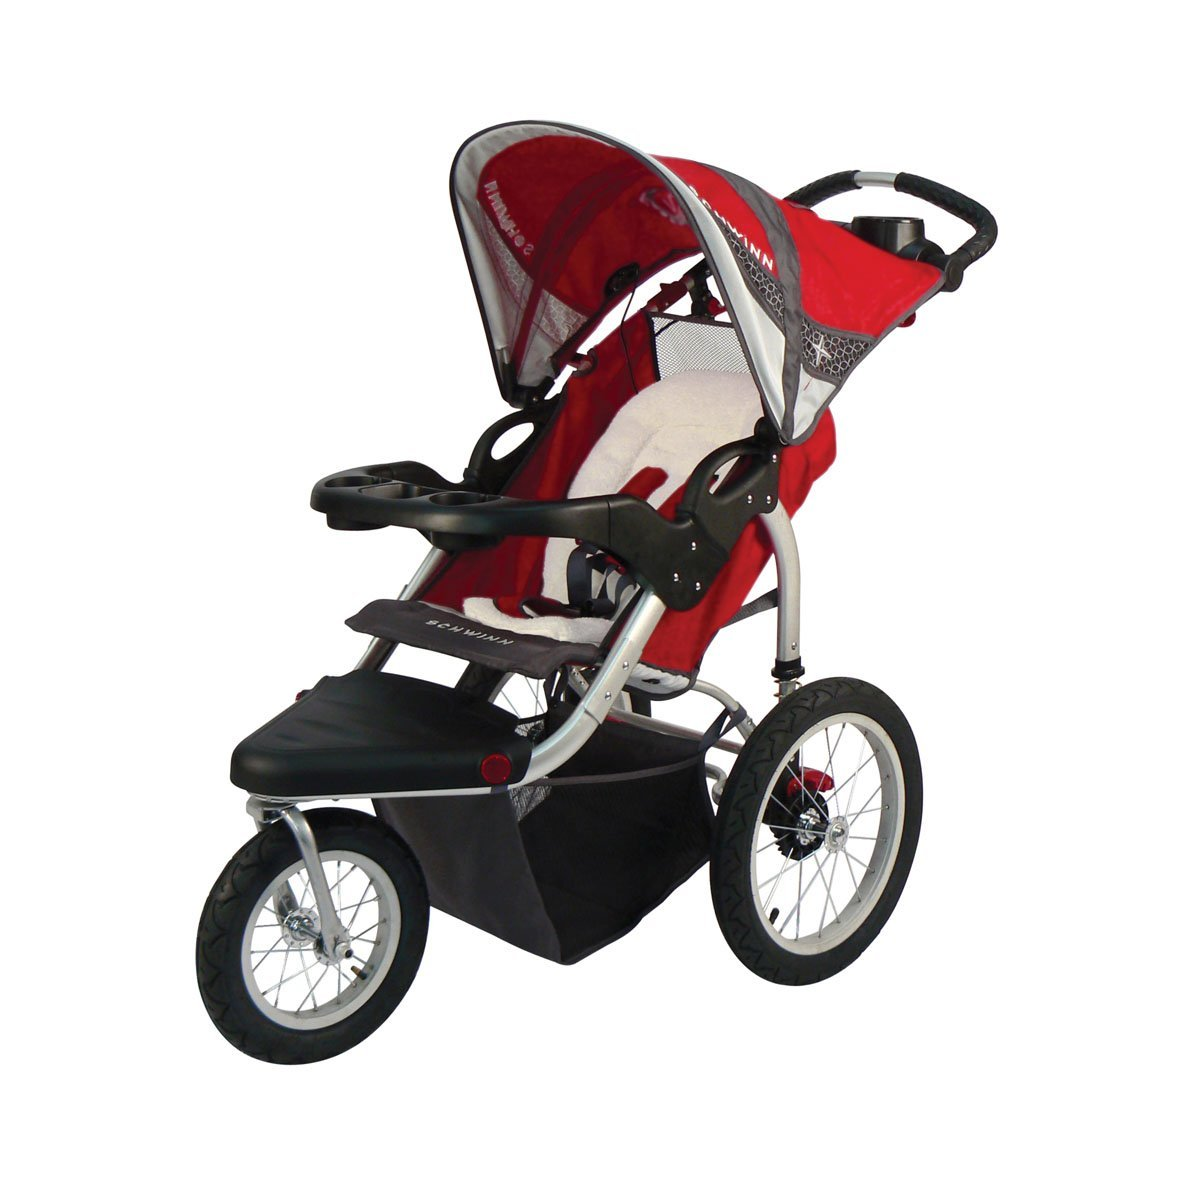 Stroller, Baby Travel Stroller That Fits Your Lifestyle